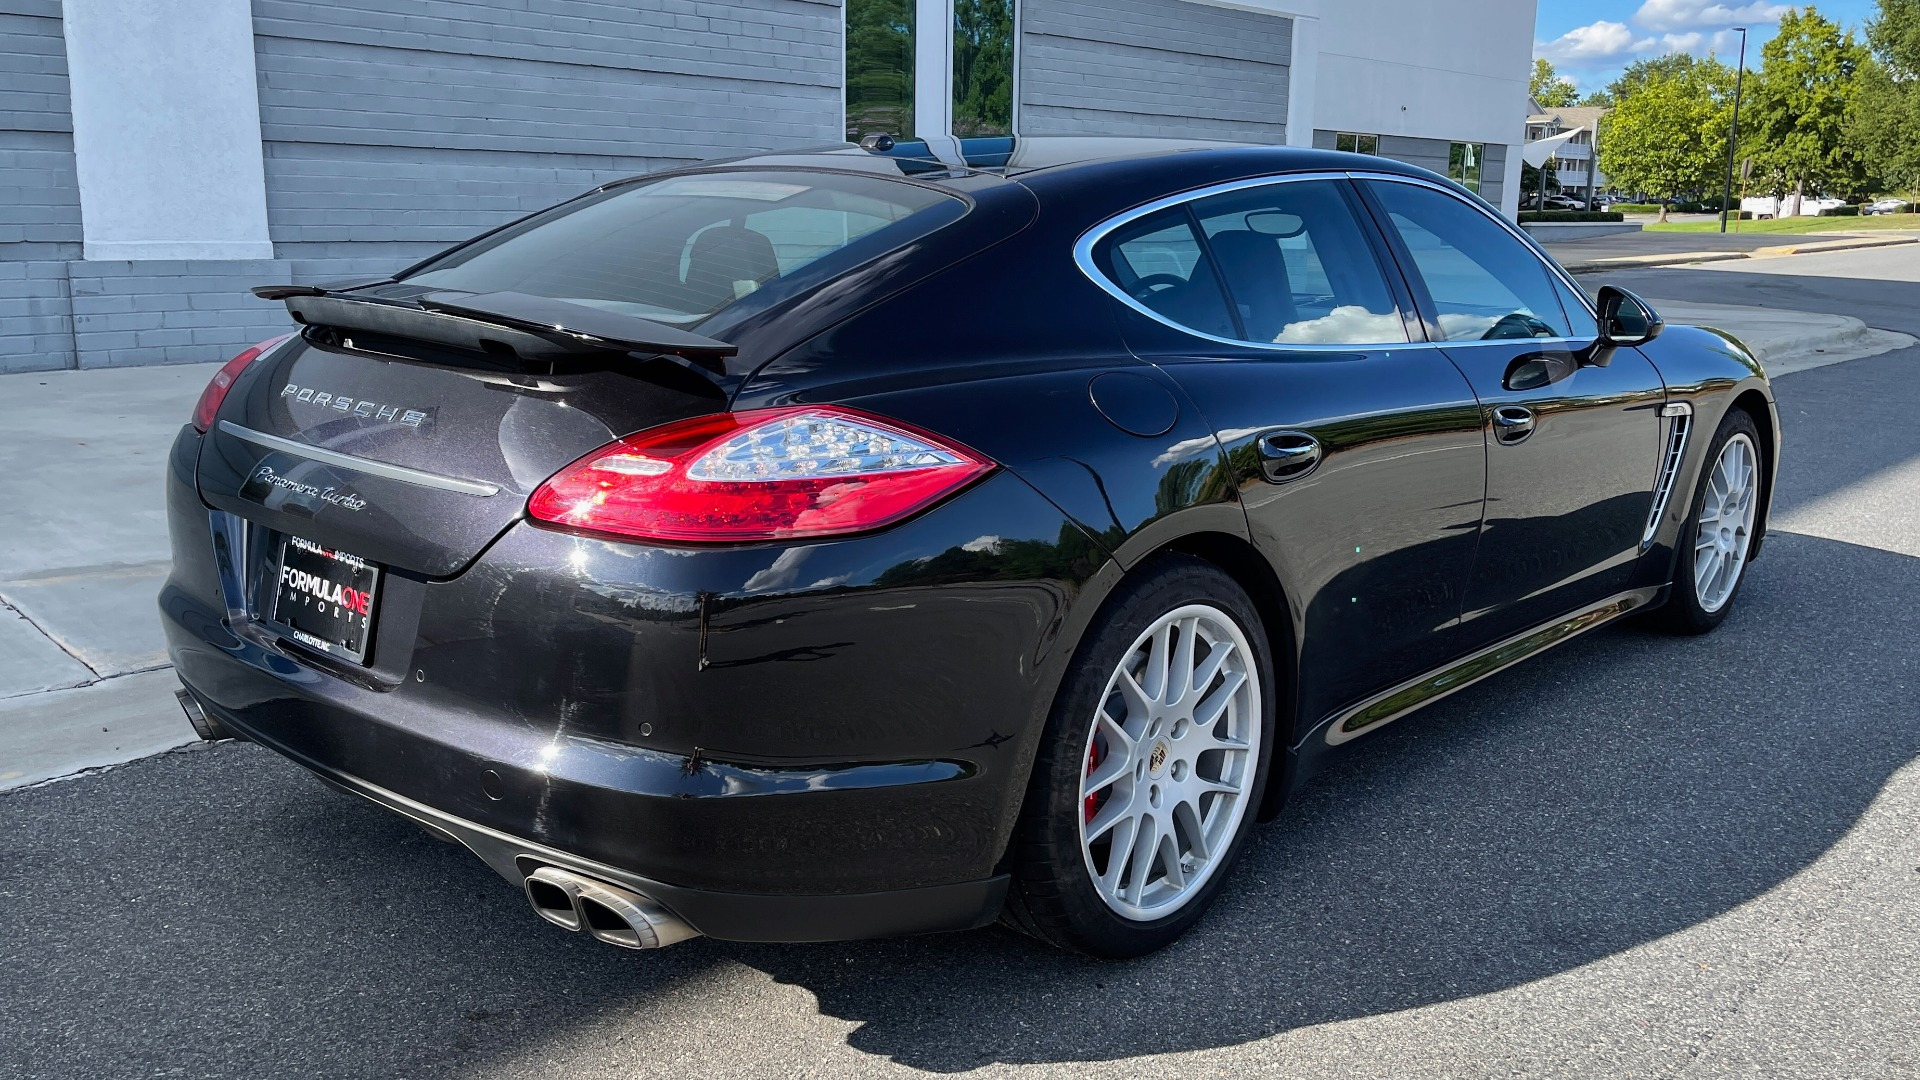 Used 2010 Porsche PANAMERA 4DR HB TURBO / SPORT CHRONO / BURMESTER / AUTO CLIMATE CONTROL for sale $40,995 at Formula Imports in Charlotte NC 28227 2